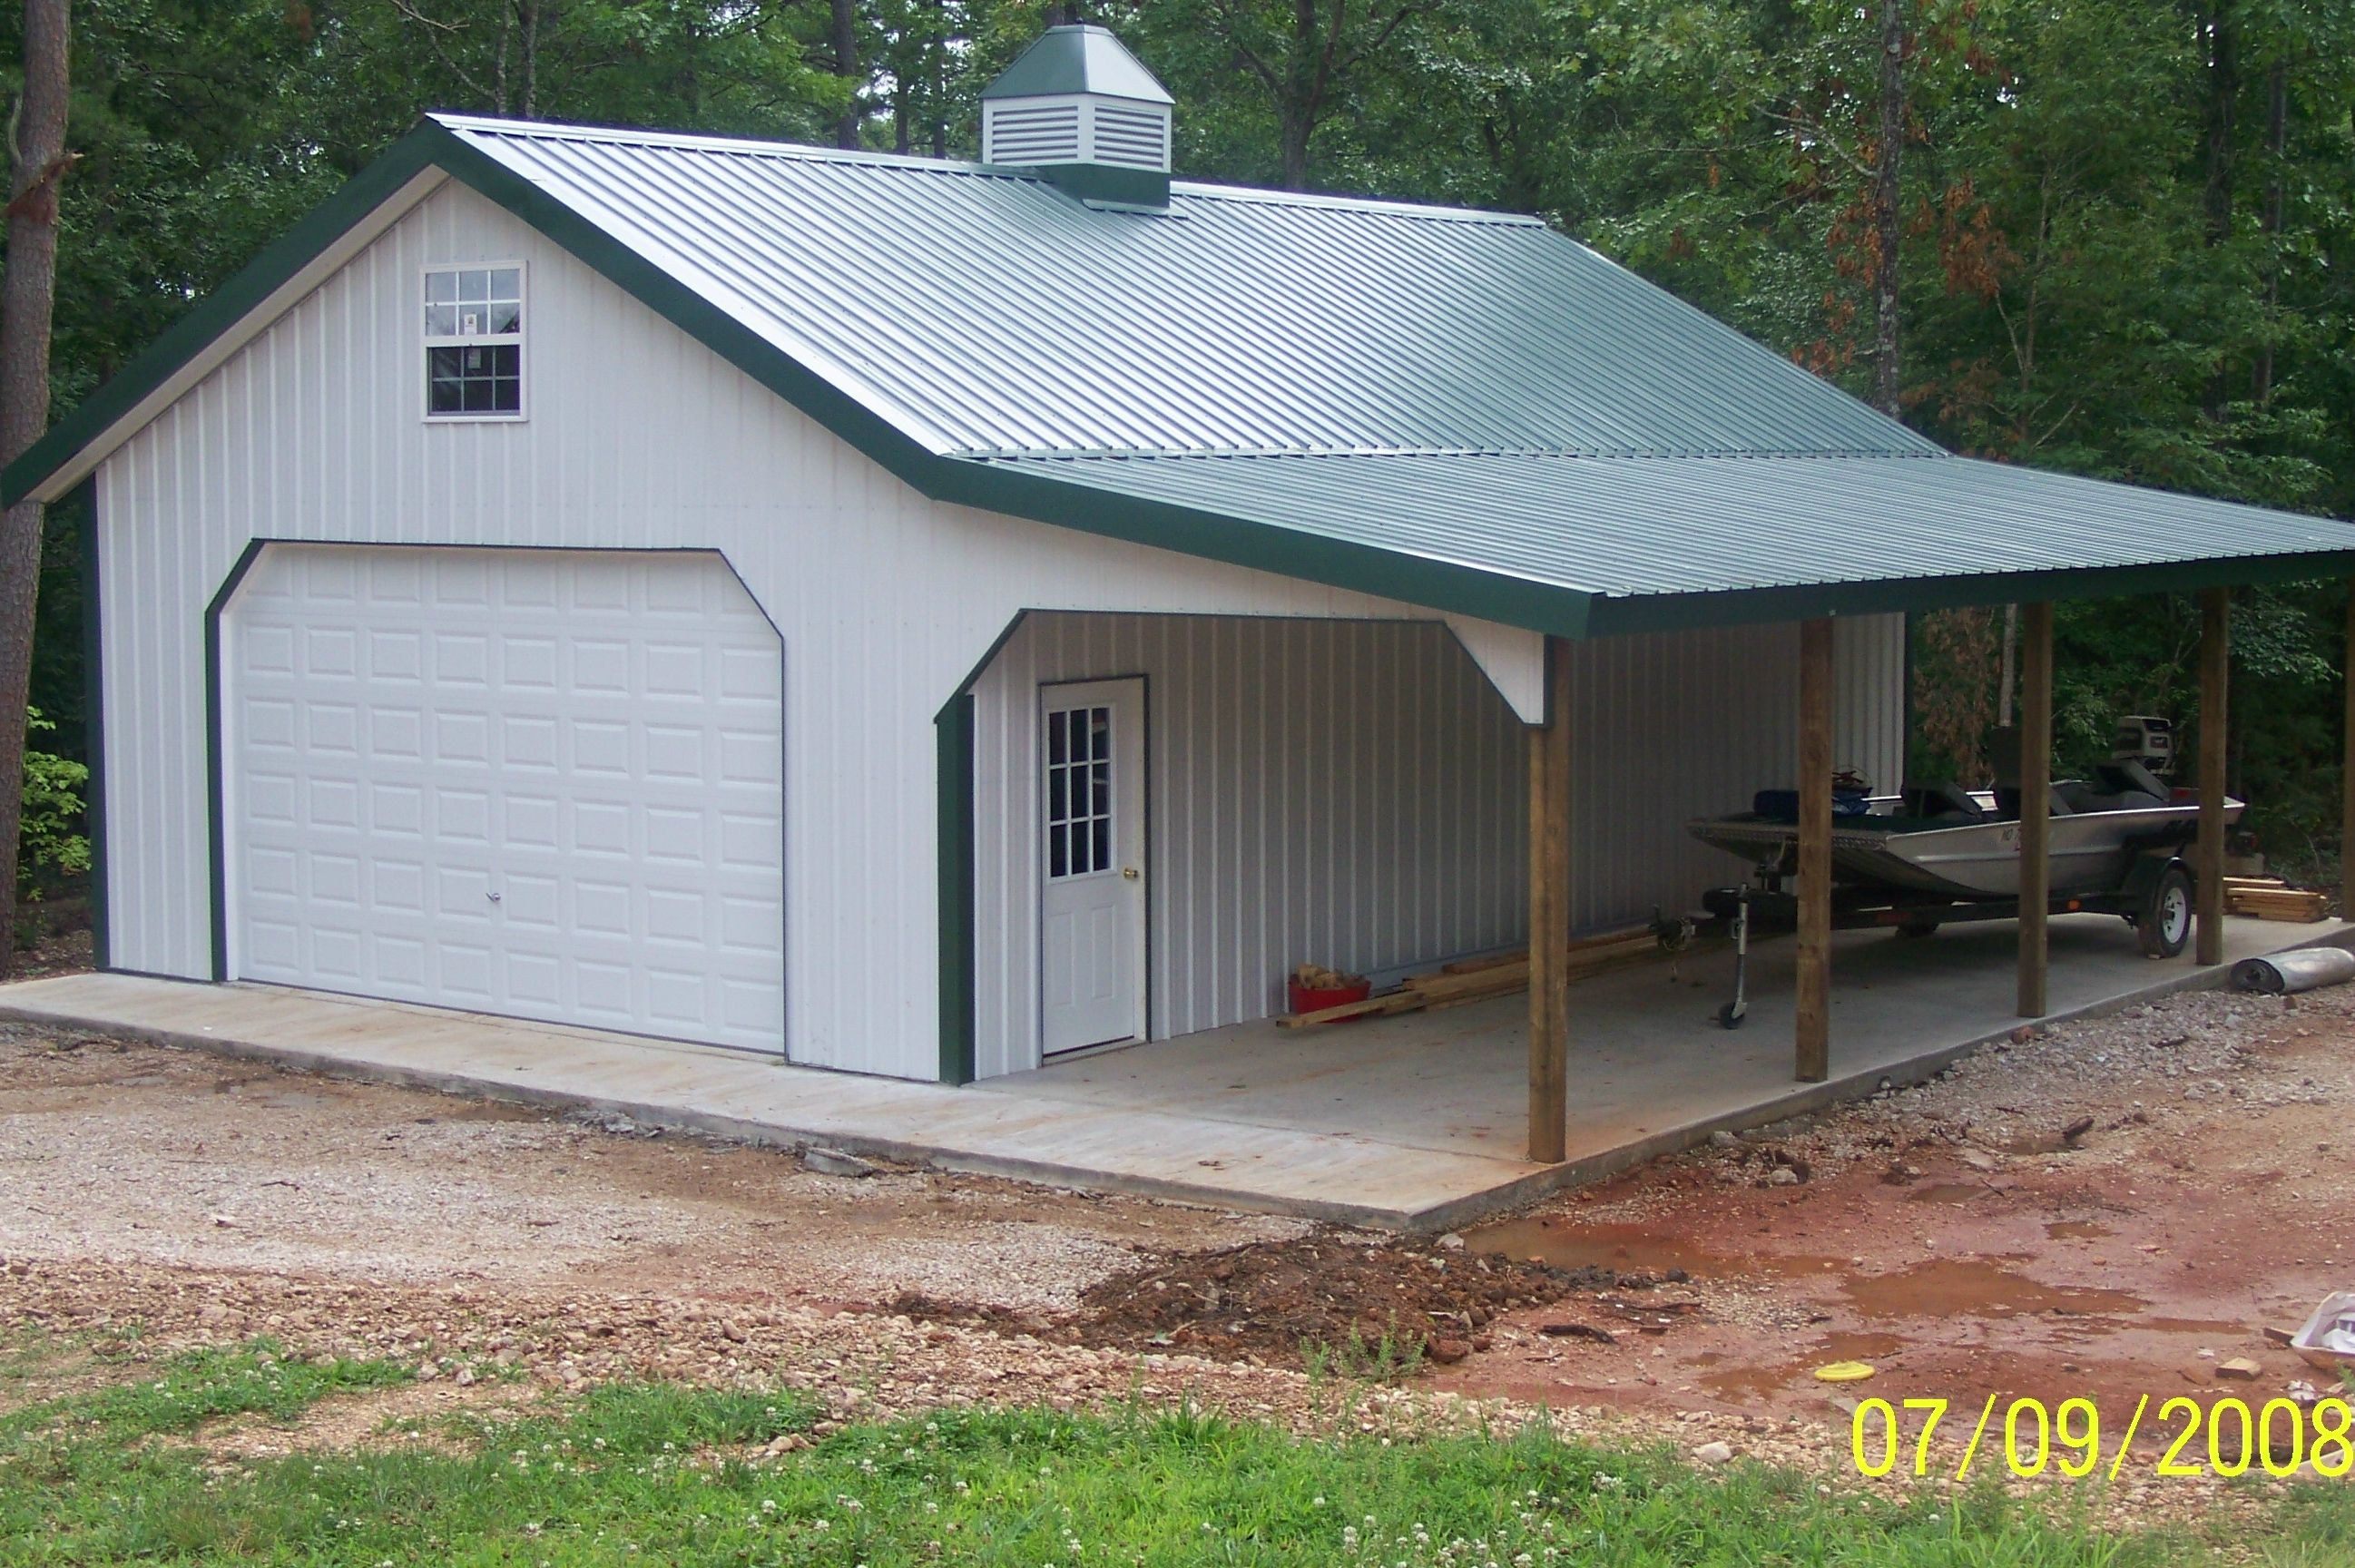 Garage Storage Buildings Garage Plans 58 Garage Plans And Free Diy Building Guides Shed